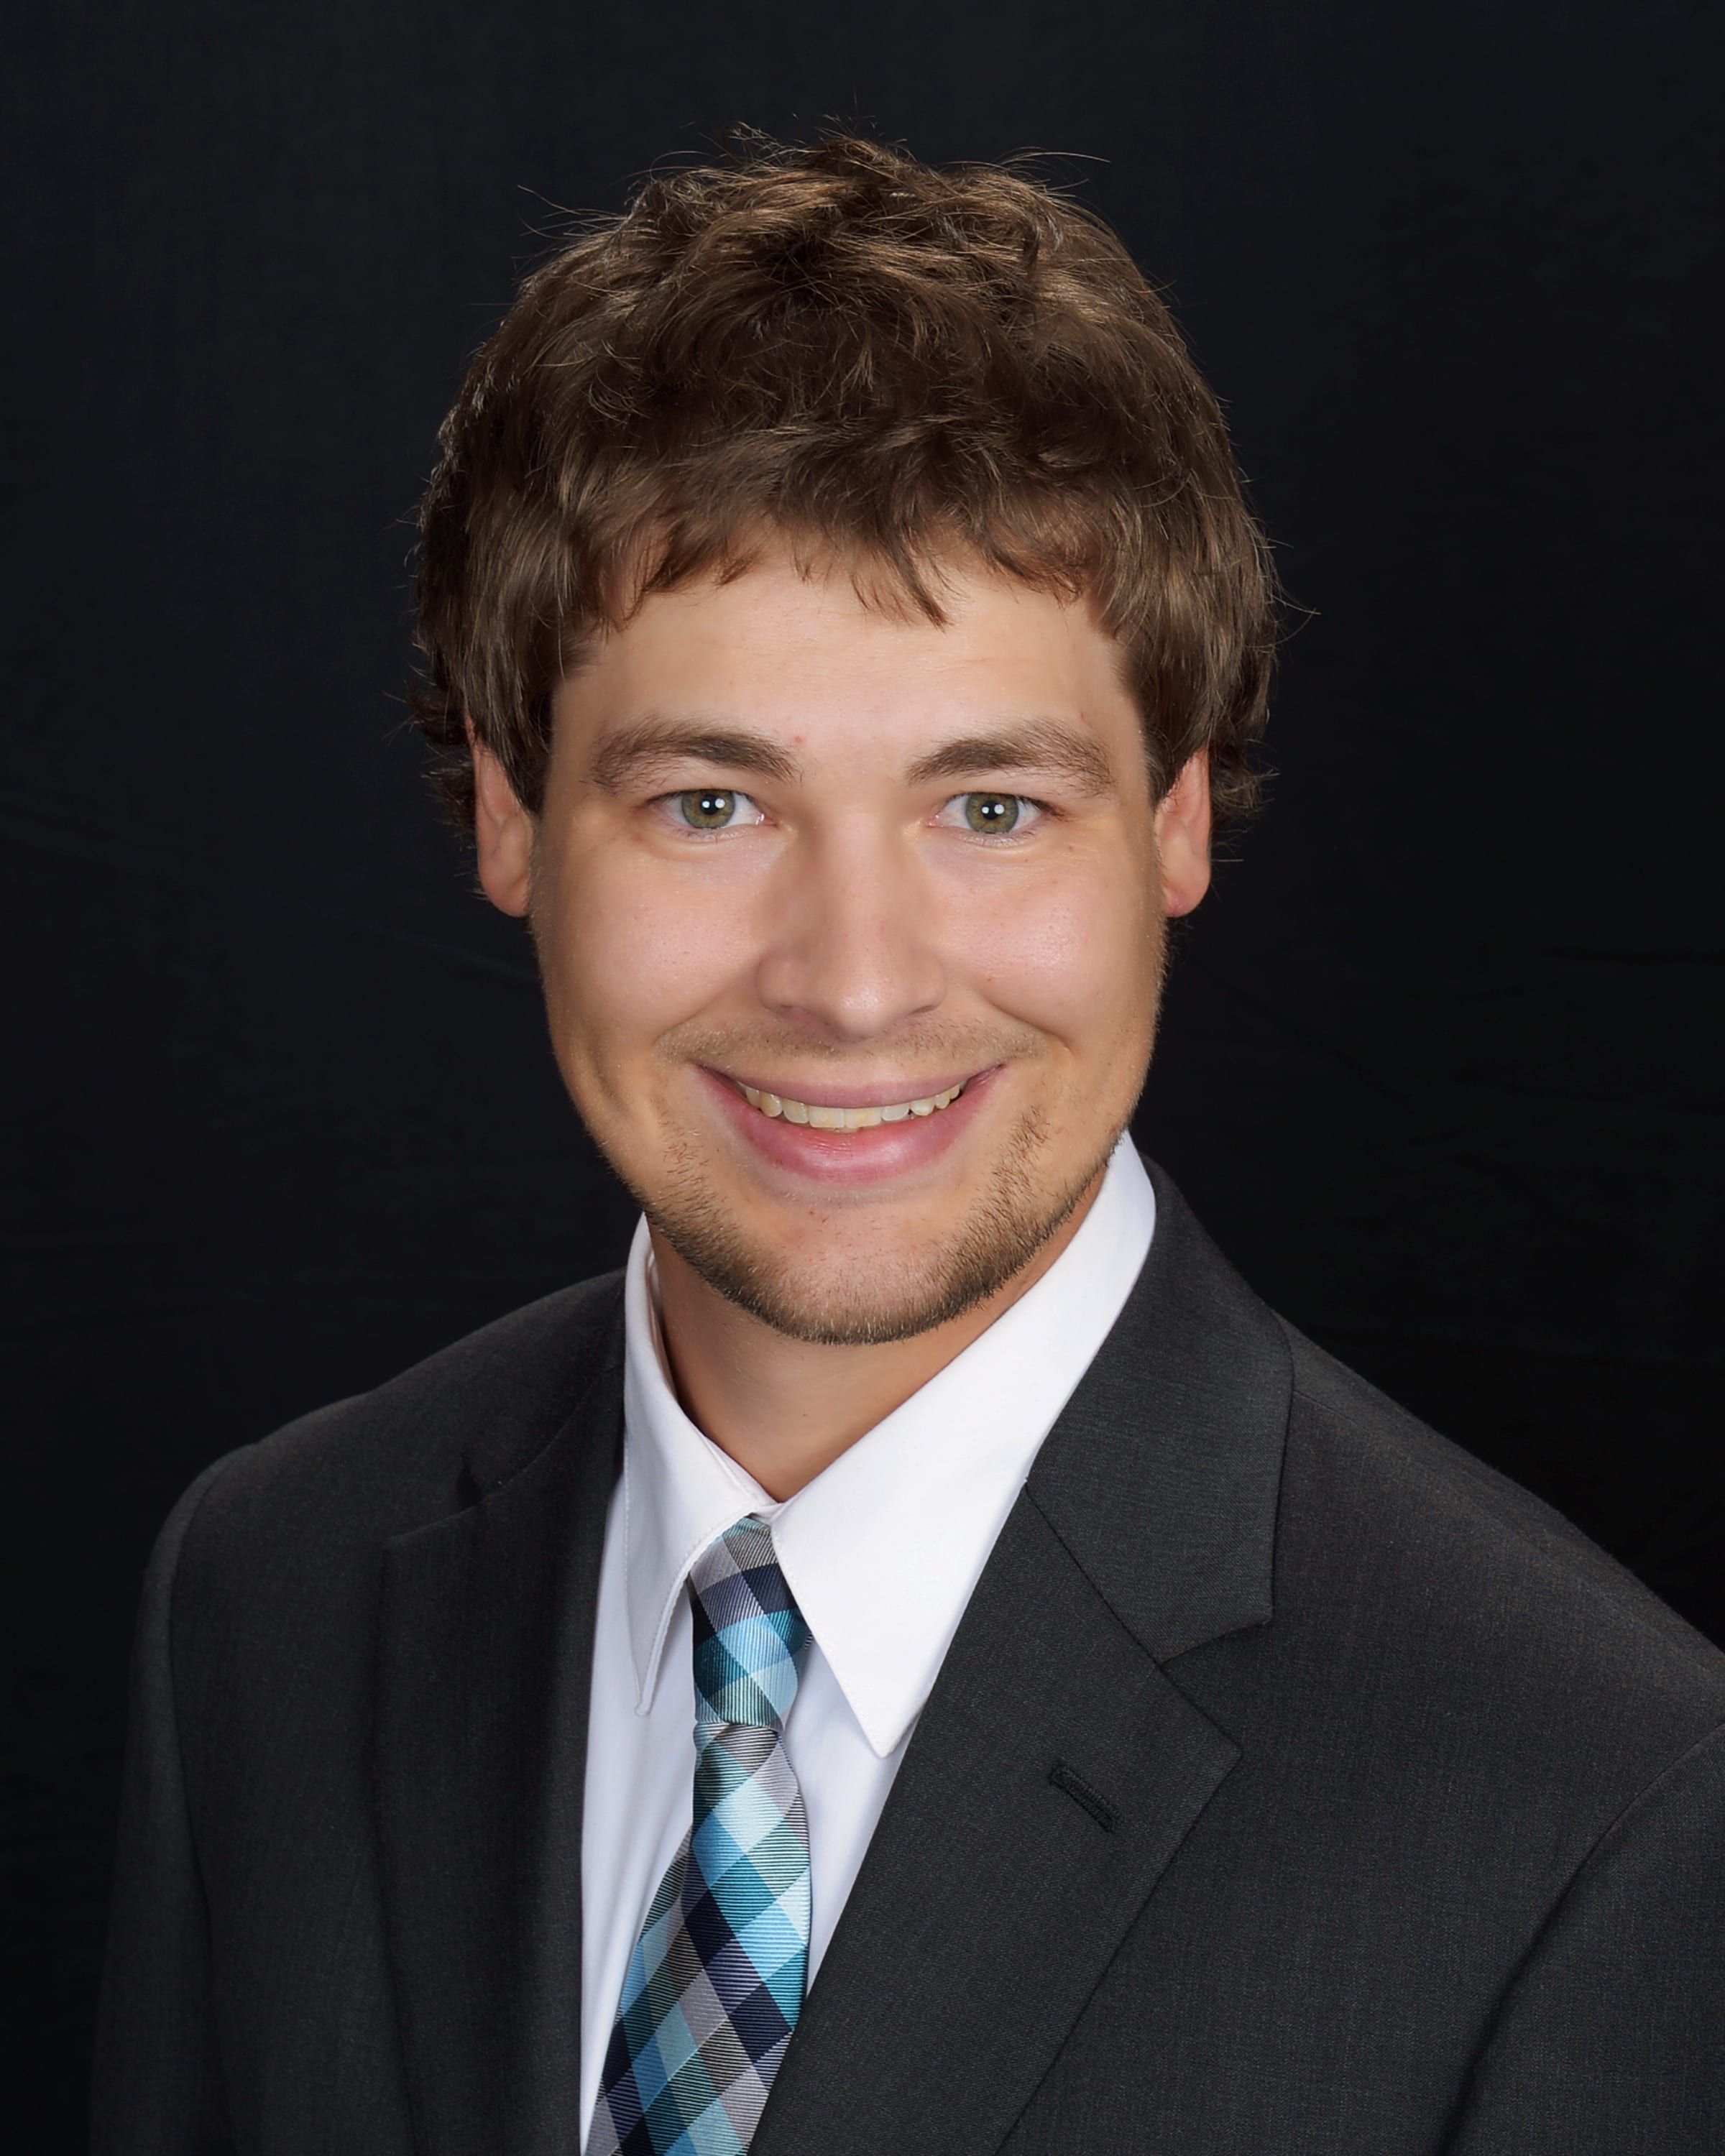 meet accountable to you inc certified public bookkeeper carson moore sioux falls south dakota